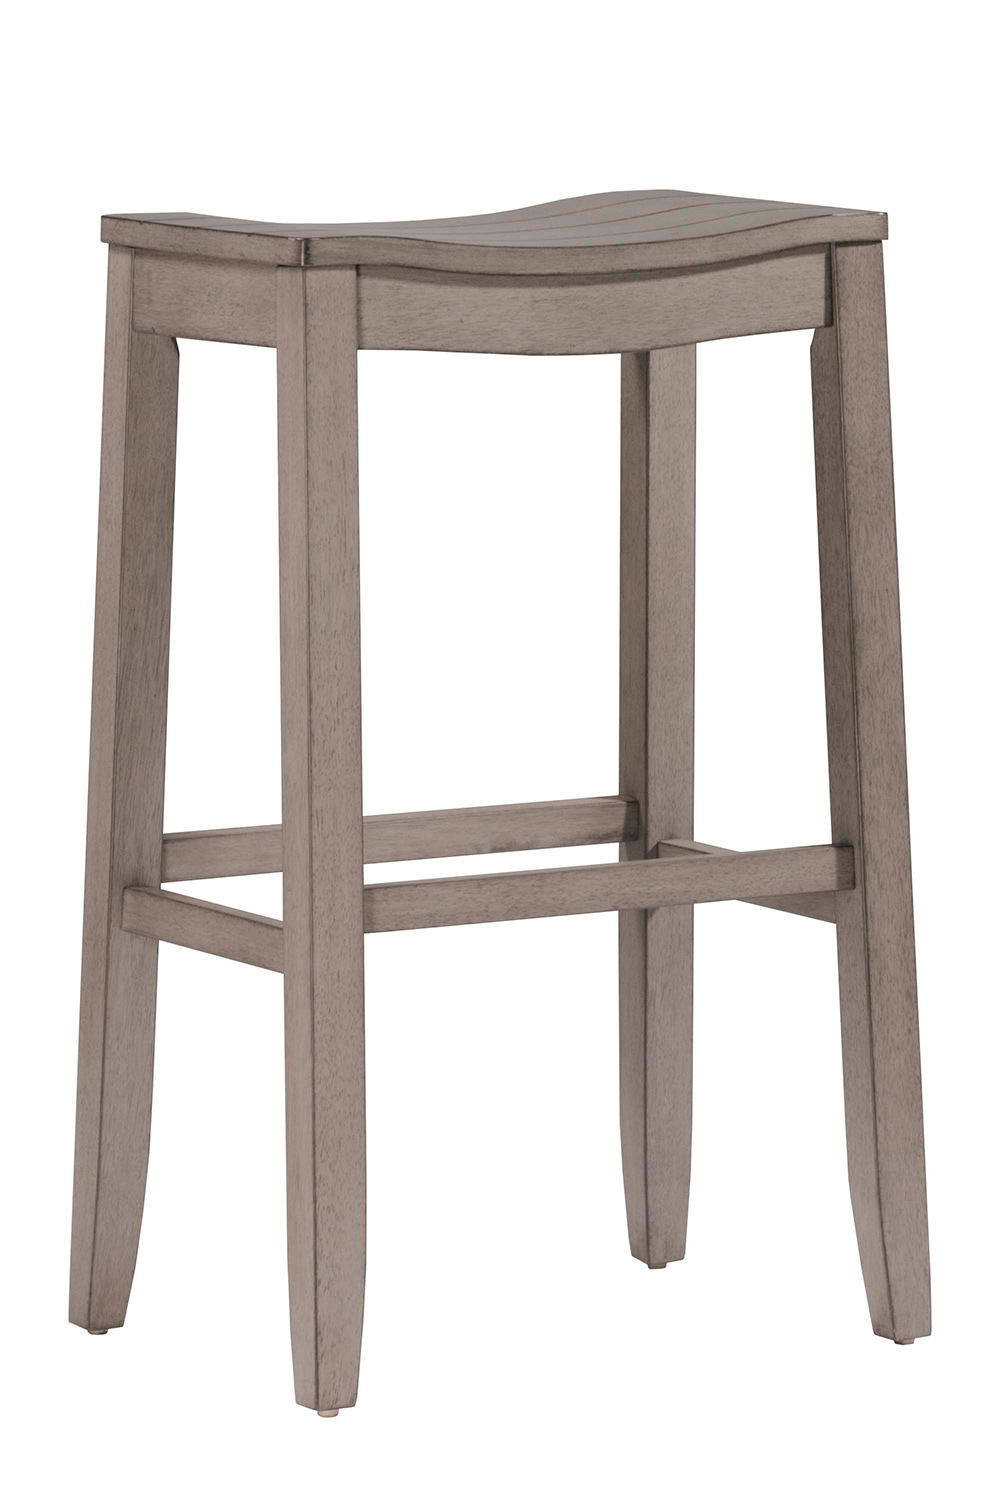 Hilale Fiddler Non Swivel Backless Counter Stool Aged Gray